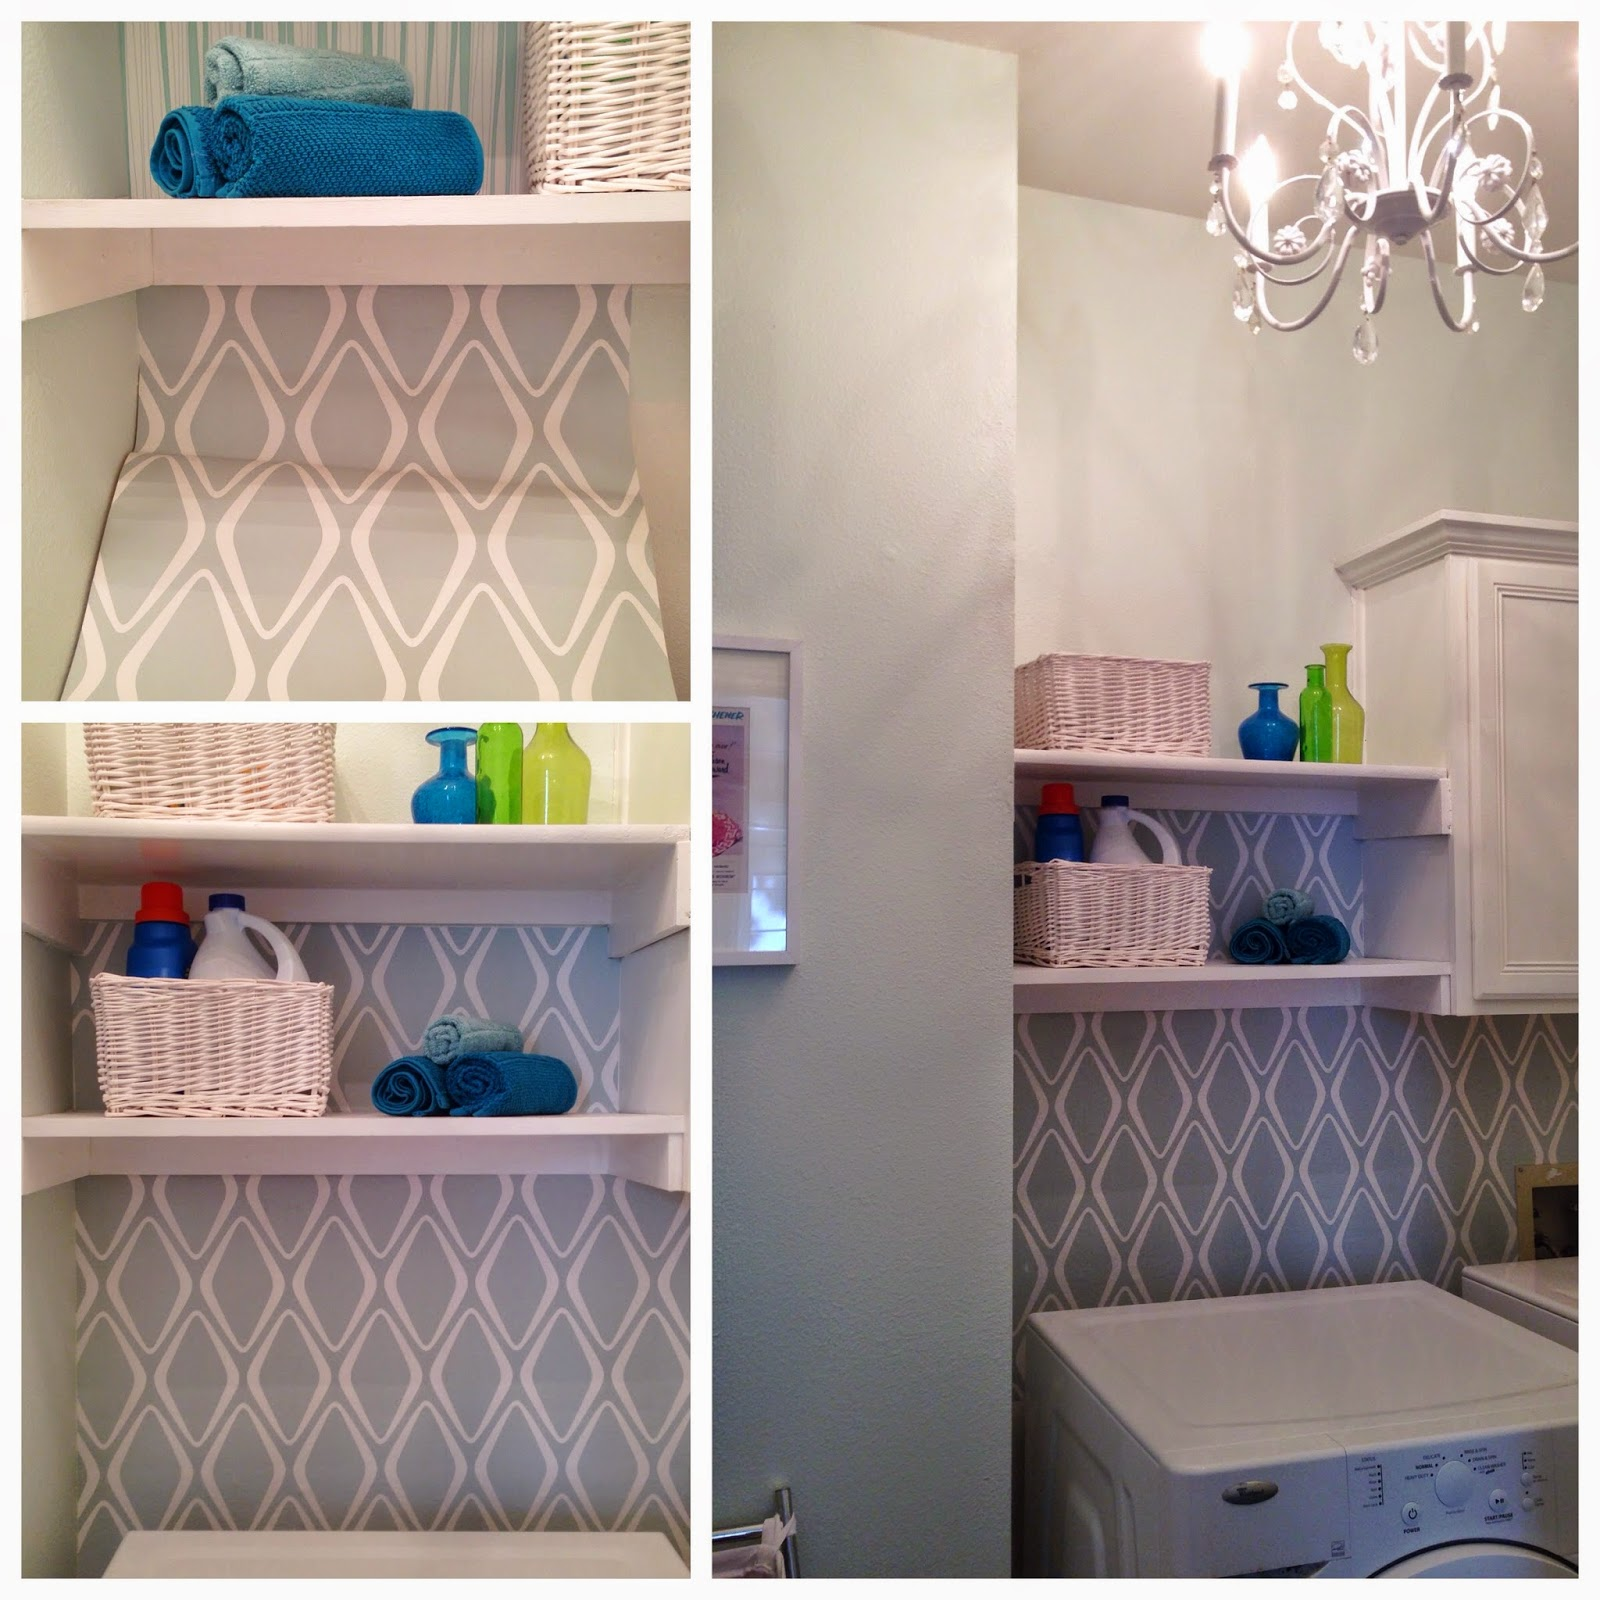 wwwfabeverydaycom Laundry Room Decor Update Devine Color Wallpaper 1600x1600